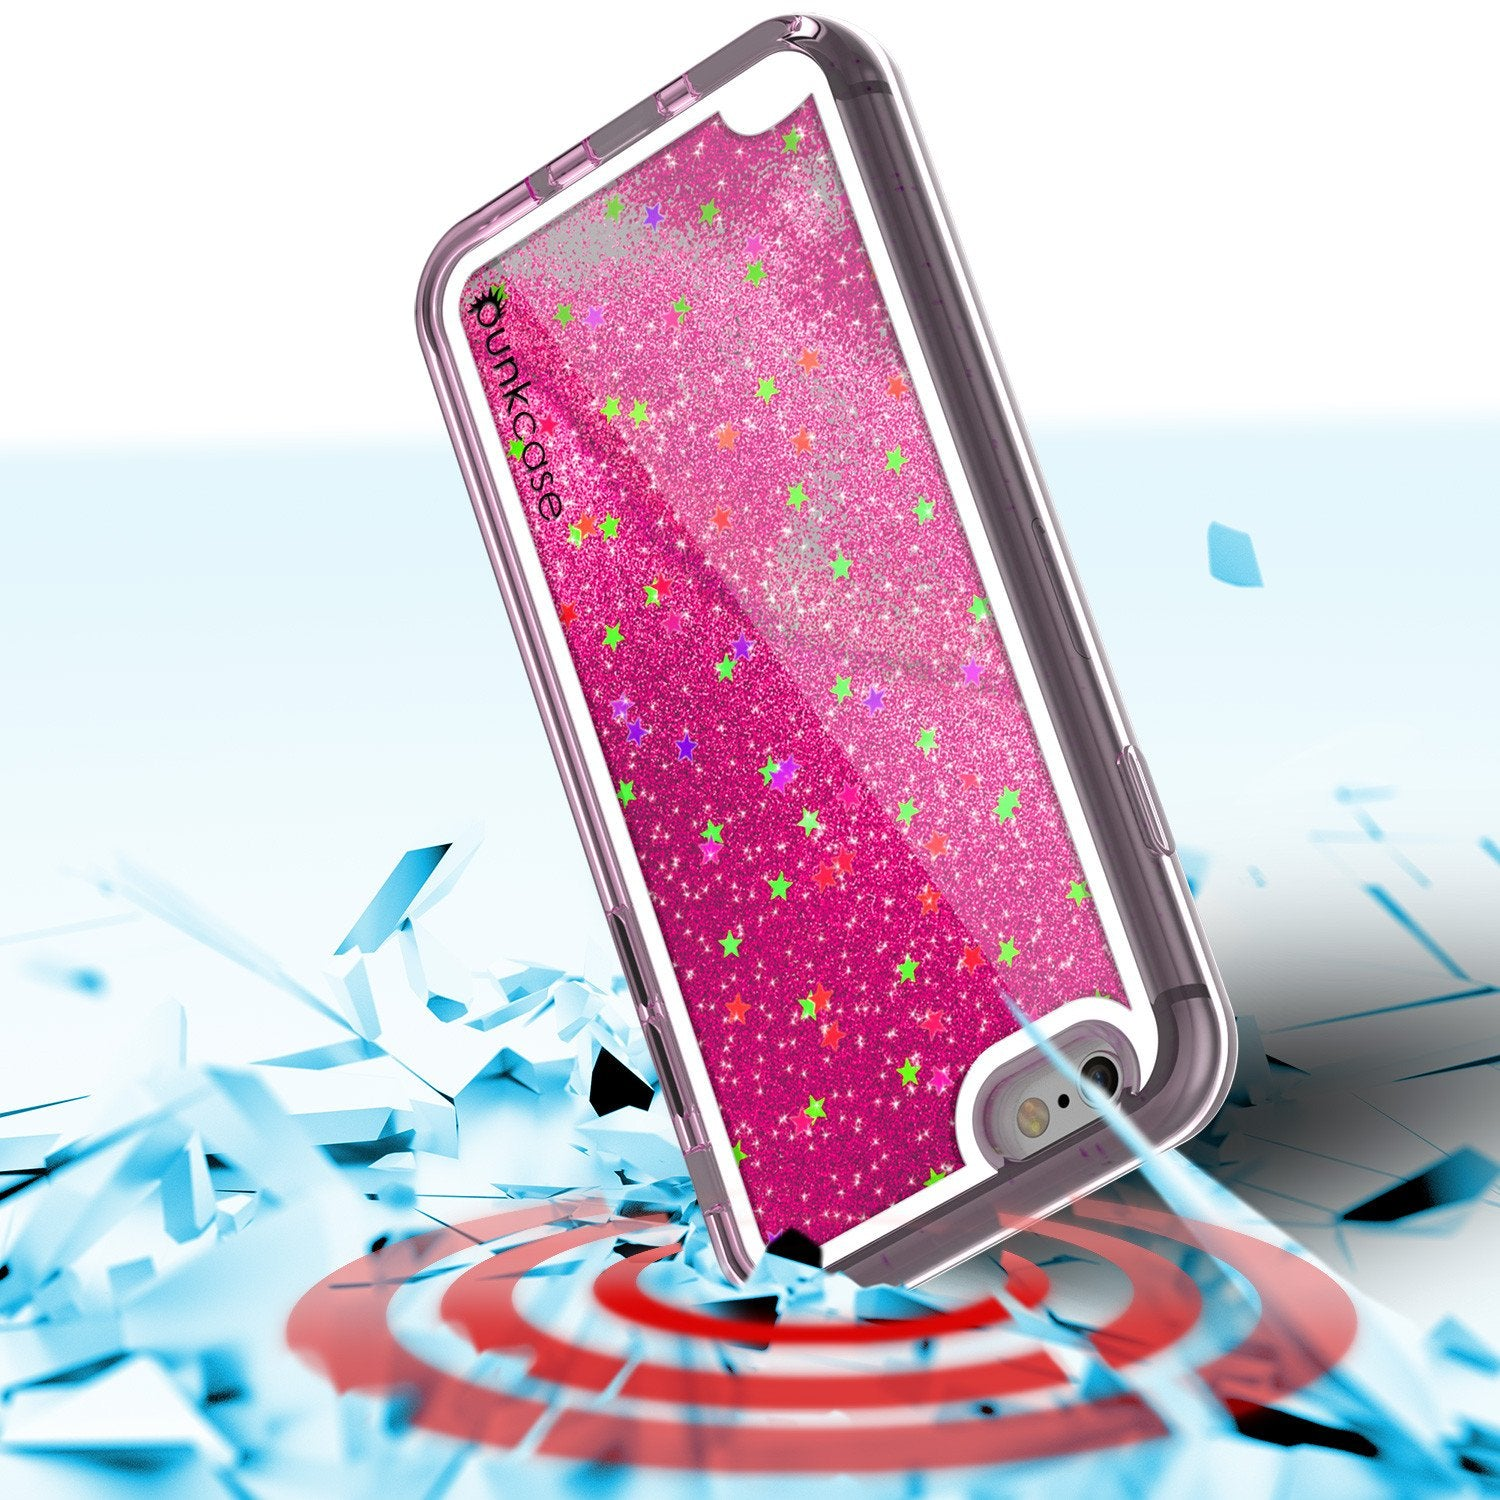 iPhone 7 Case, PunkCase LIQUID Pink Series, Protective Dual Layer Floating Glitter Cover - PunkCase NZ